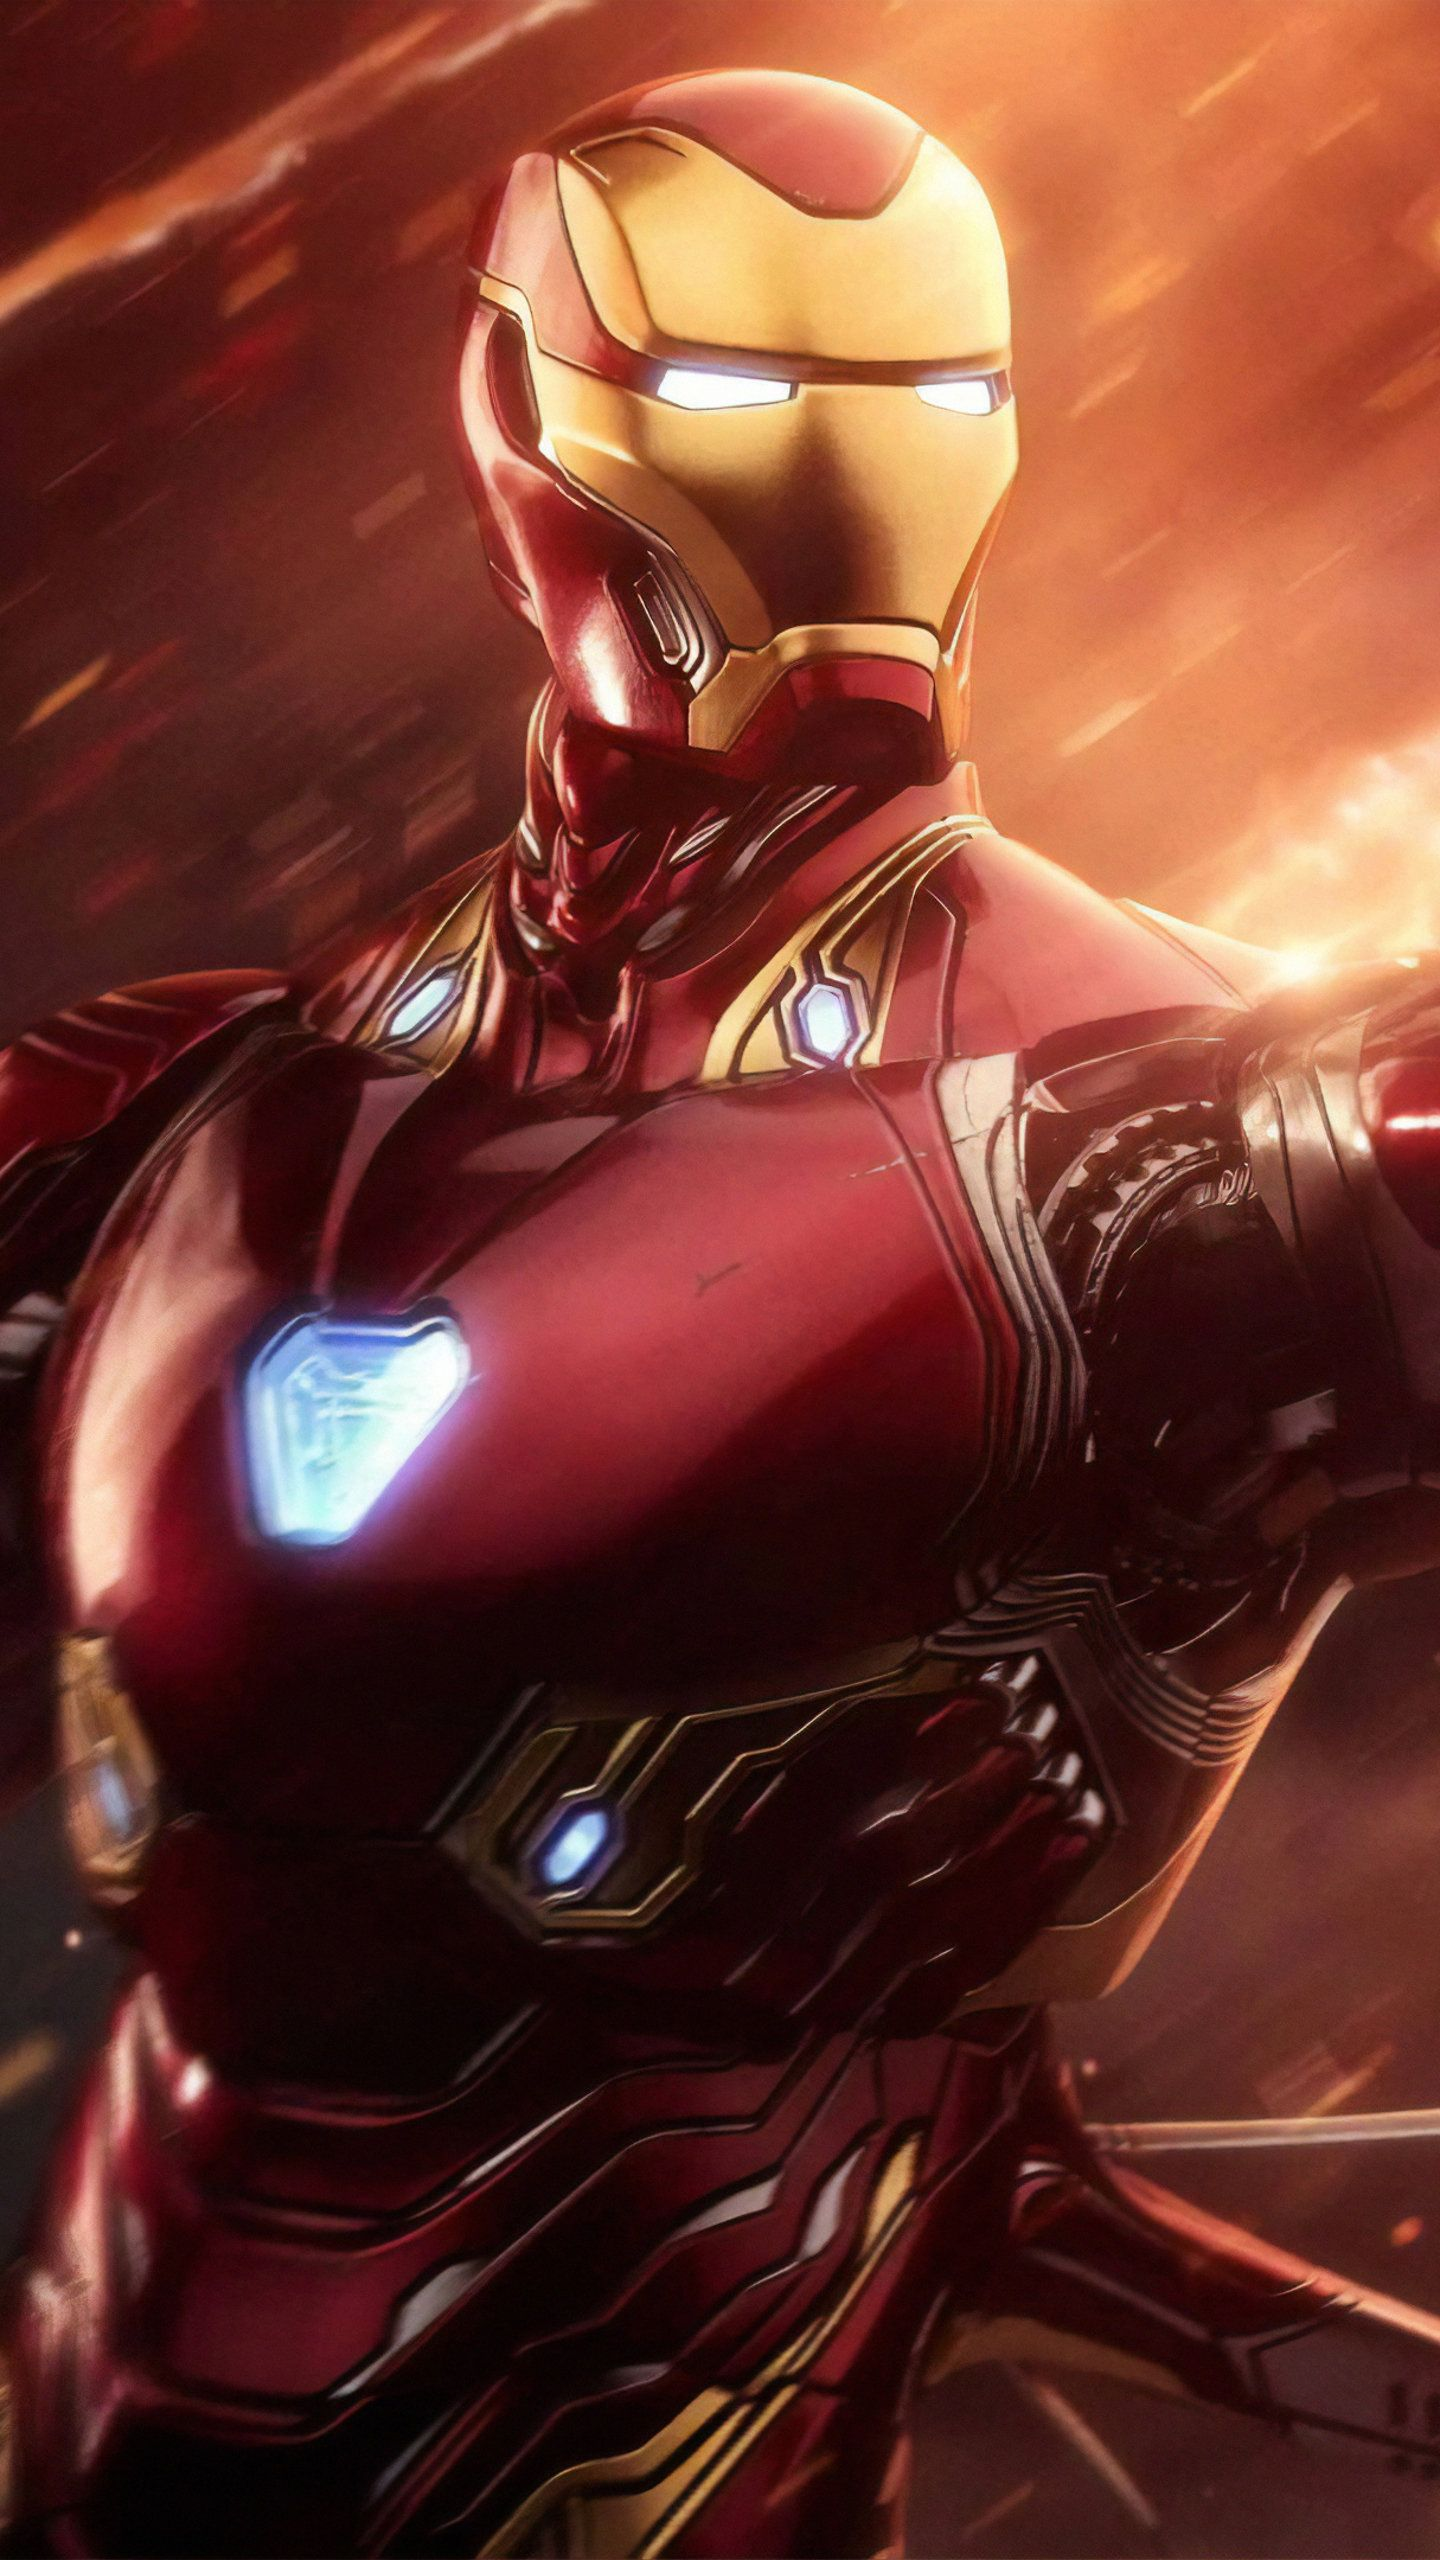 4k New Iron Man 2019 Hd Superheroes Wallpapers Photos And Pictures Iron Man Wallpaper Iron Man Avengers Iron Man